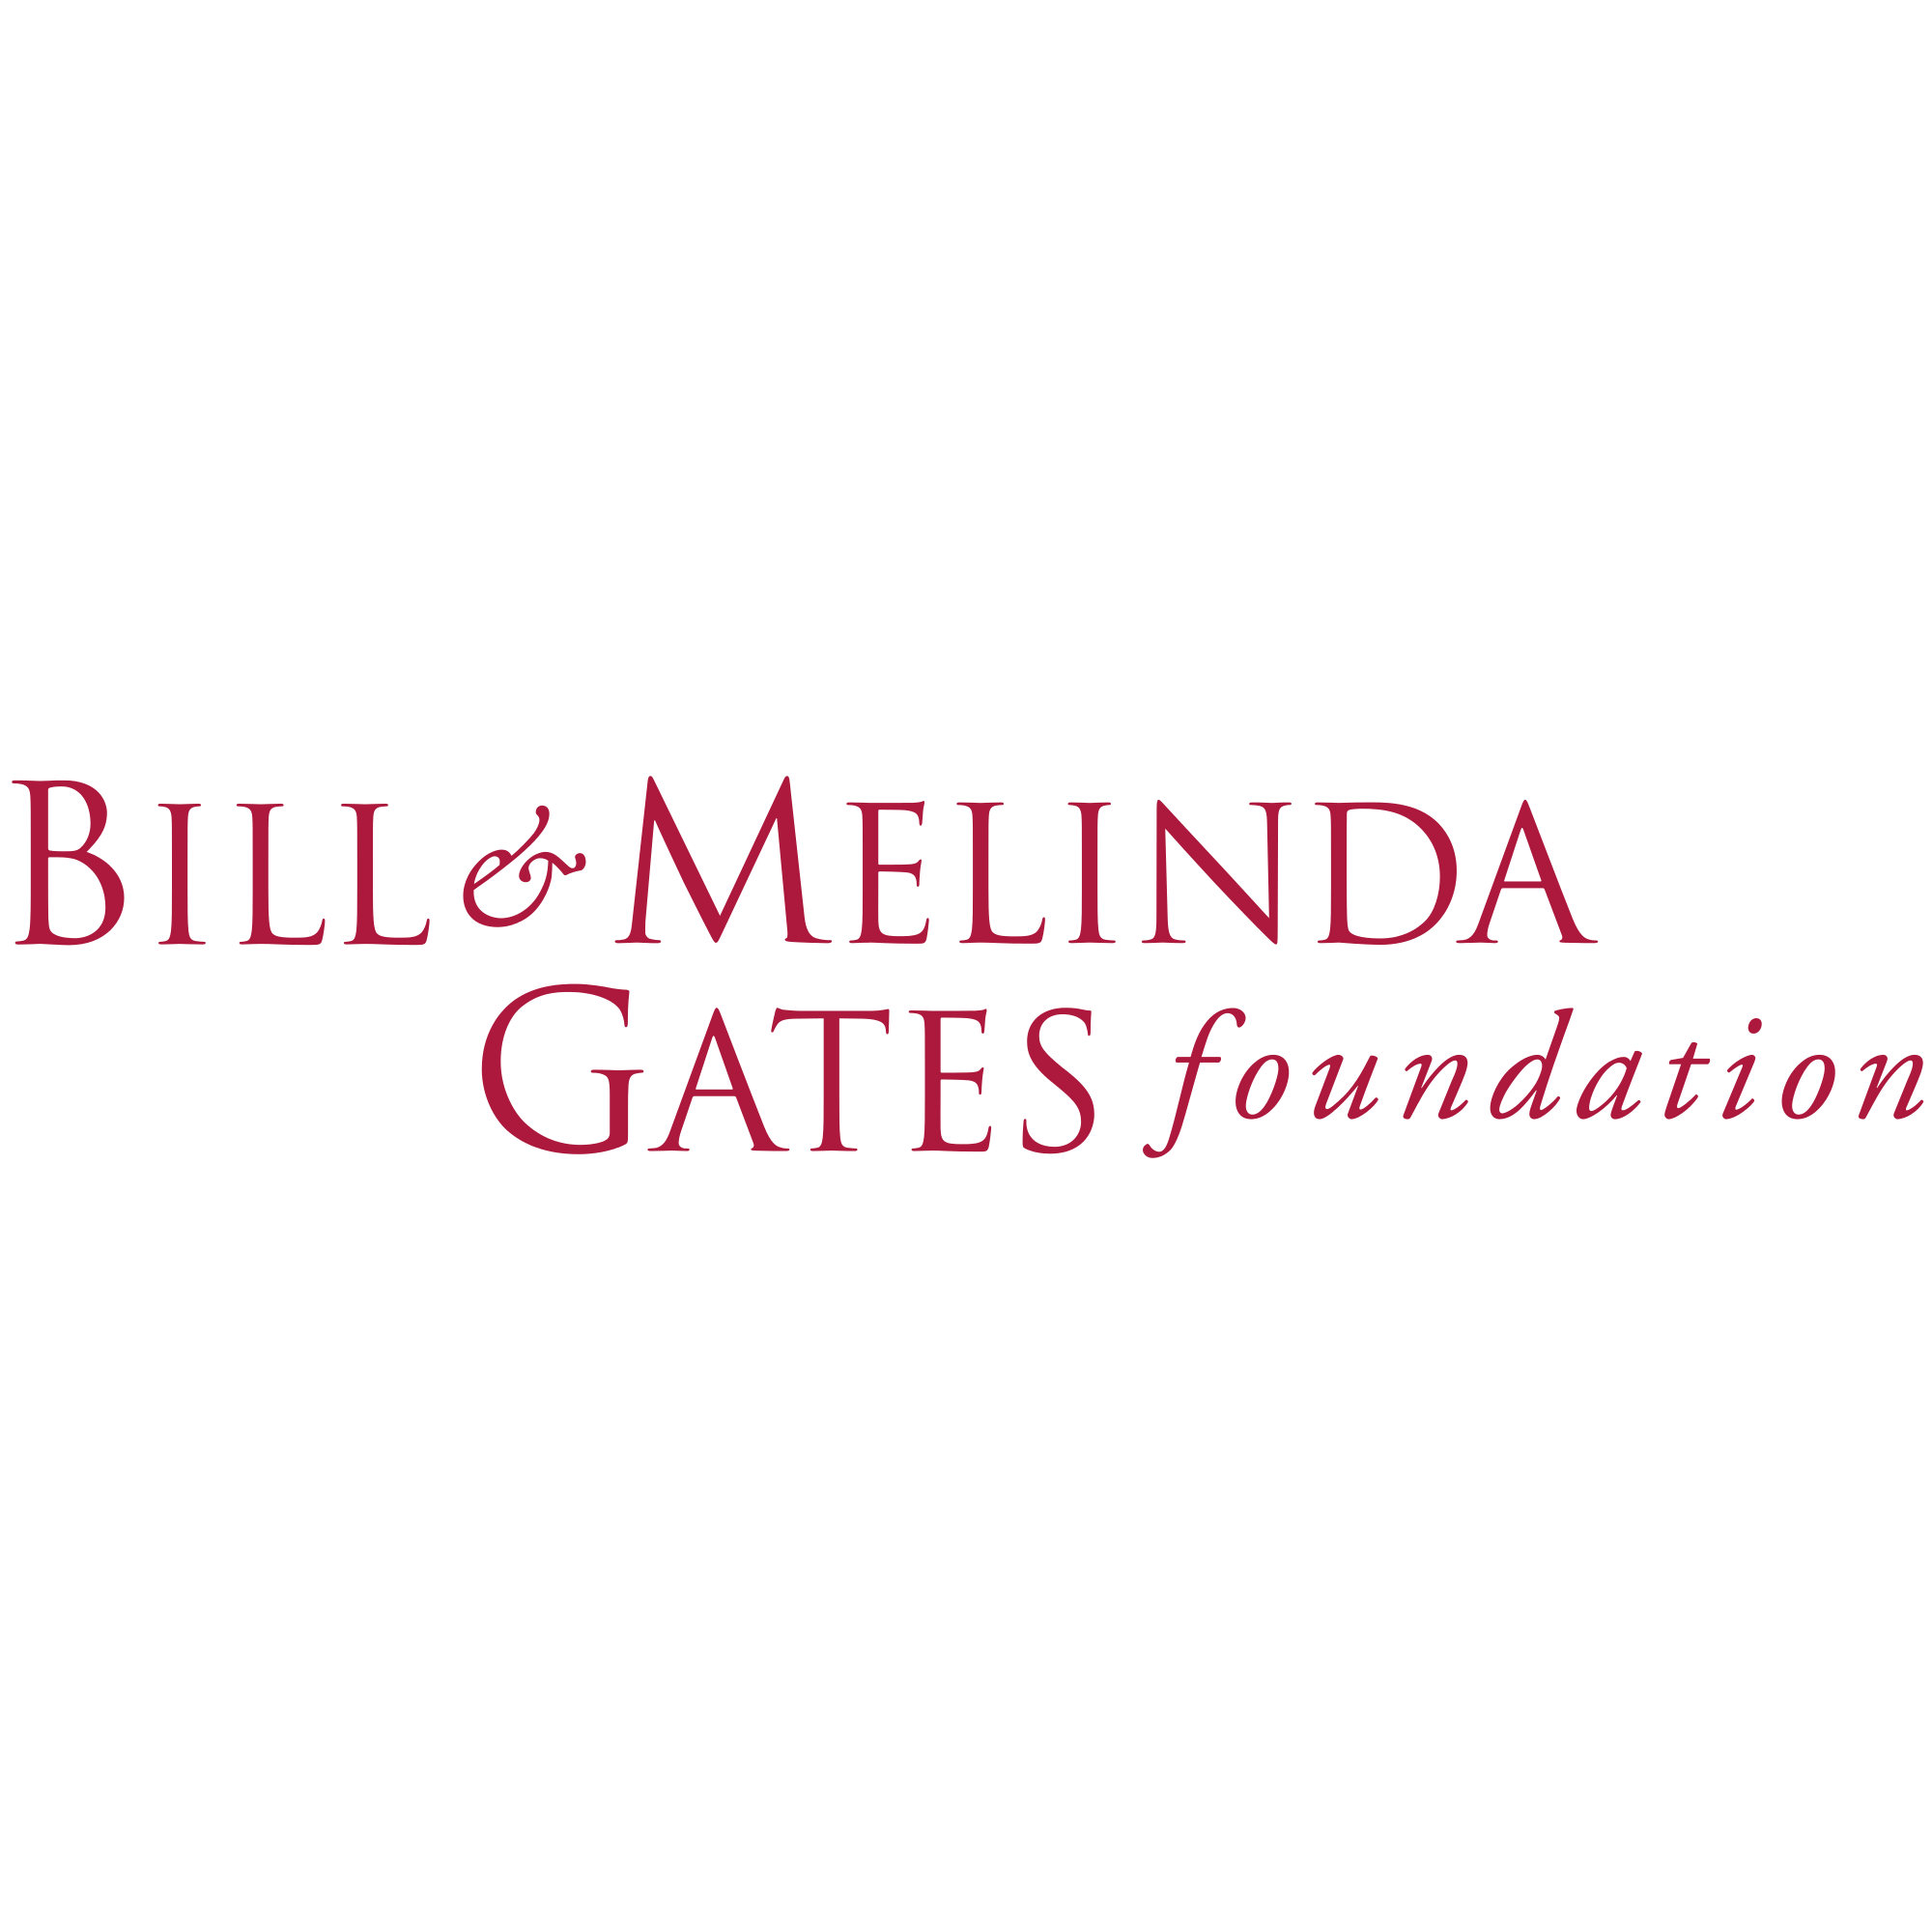 Bill-Melinda-Gates-Foundation-Logo-copy_square.png